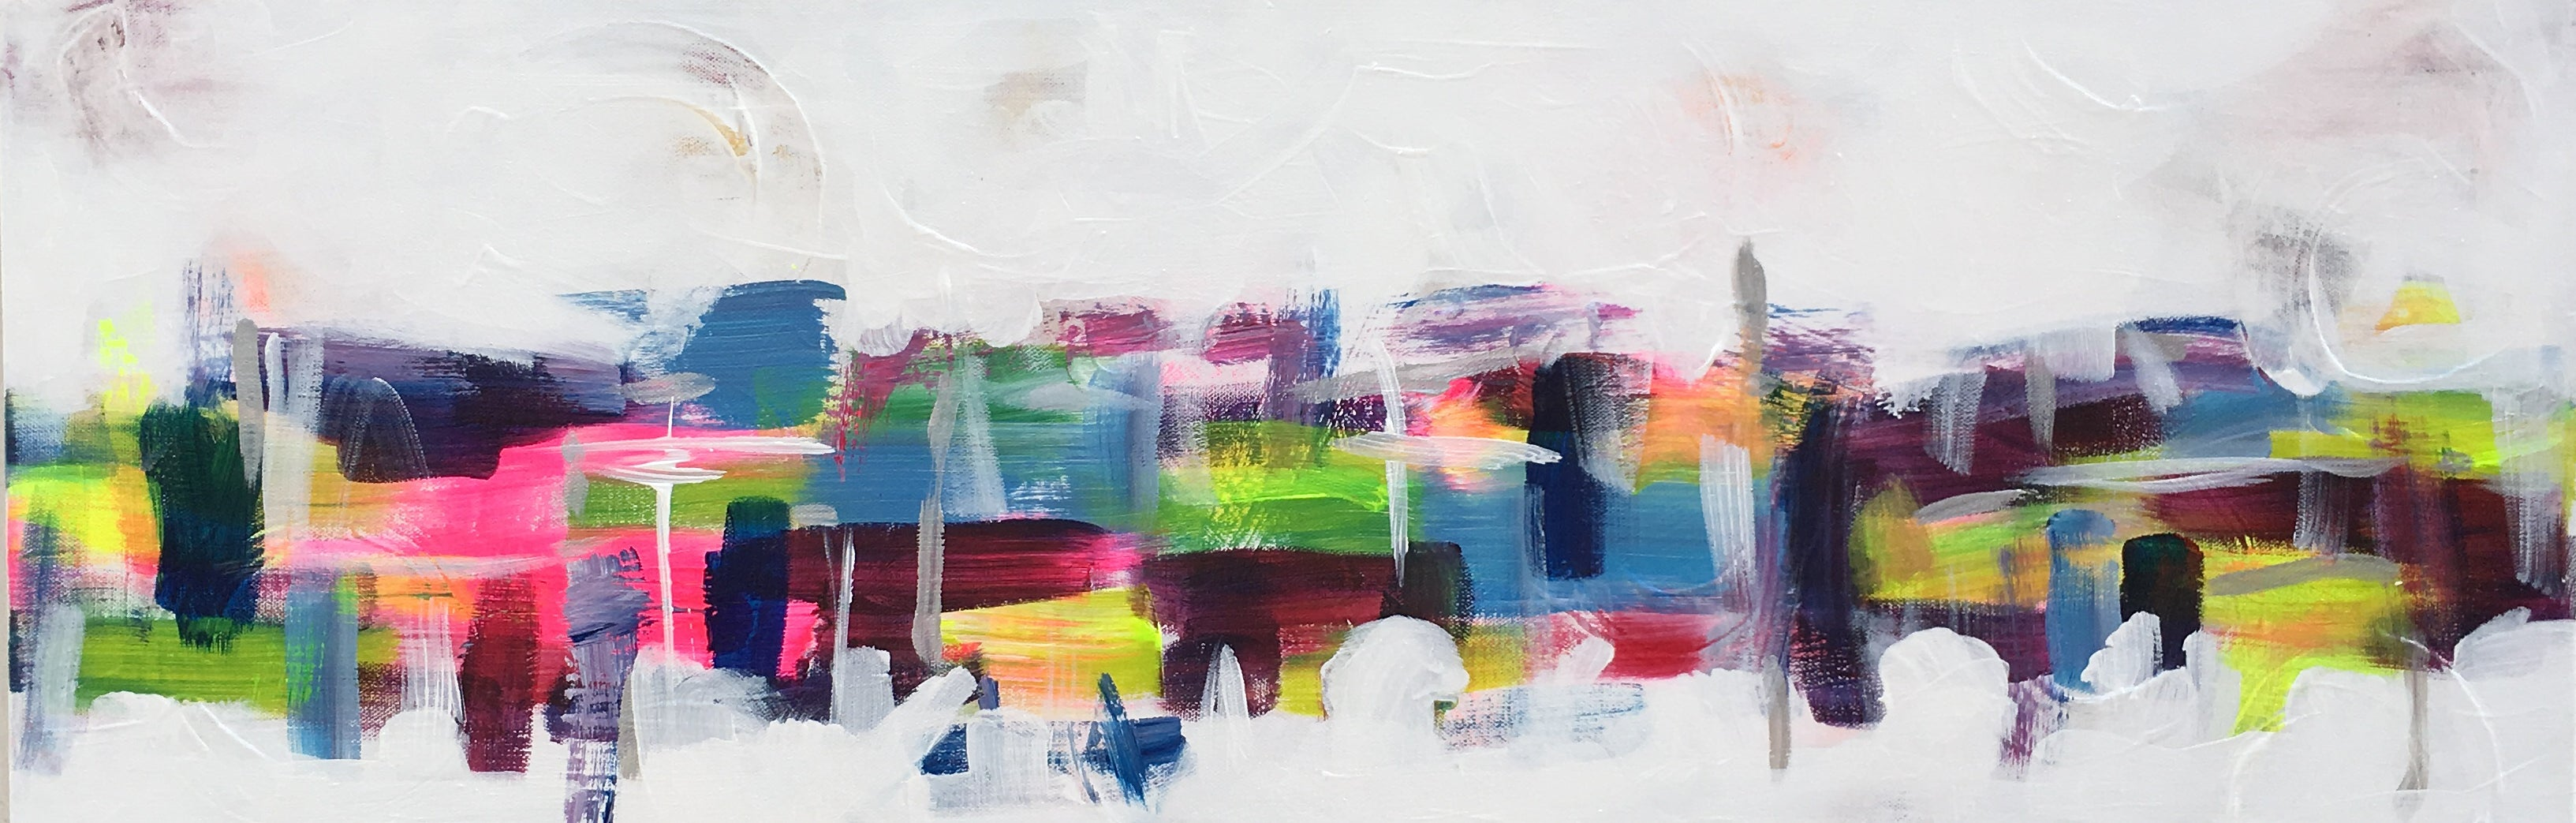 Abstract and modern acrylic painting of spring in the City by Alison Corteen